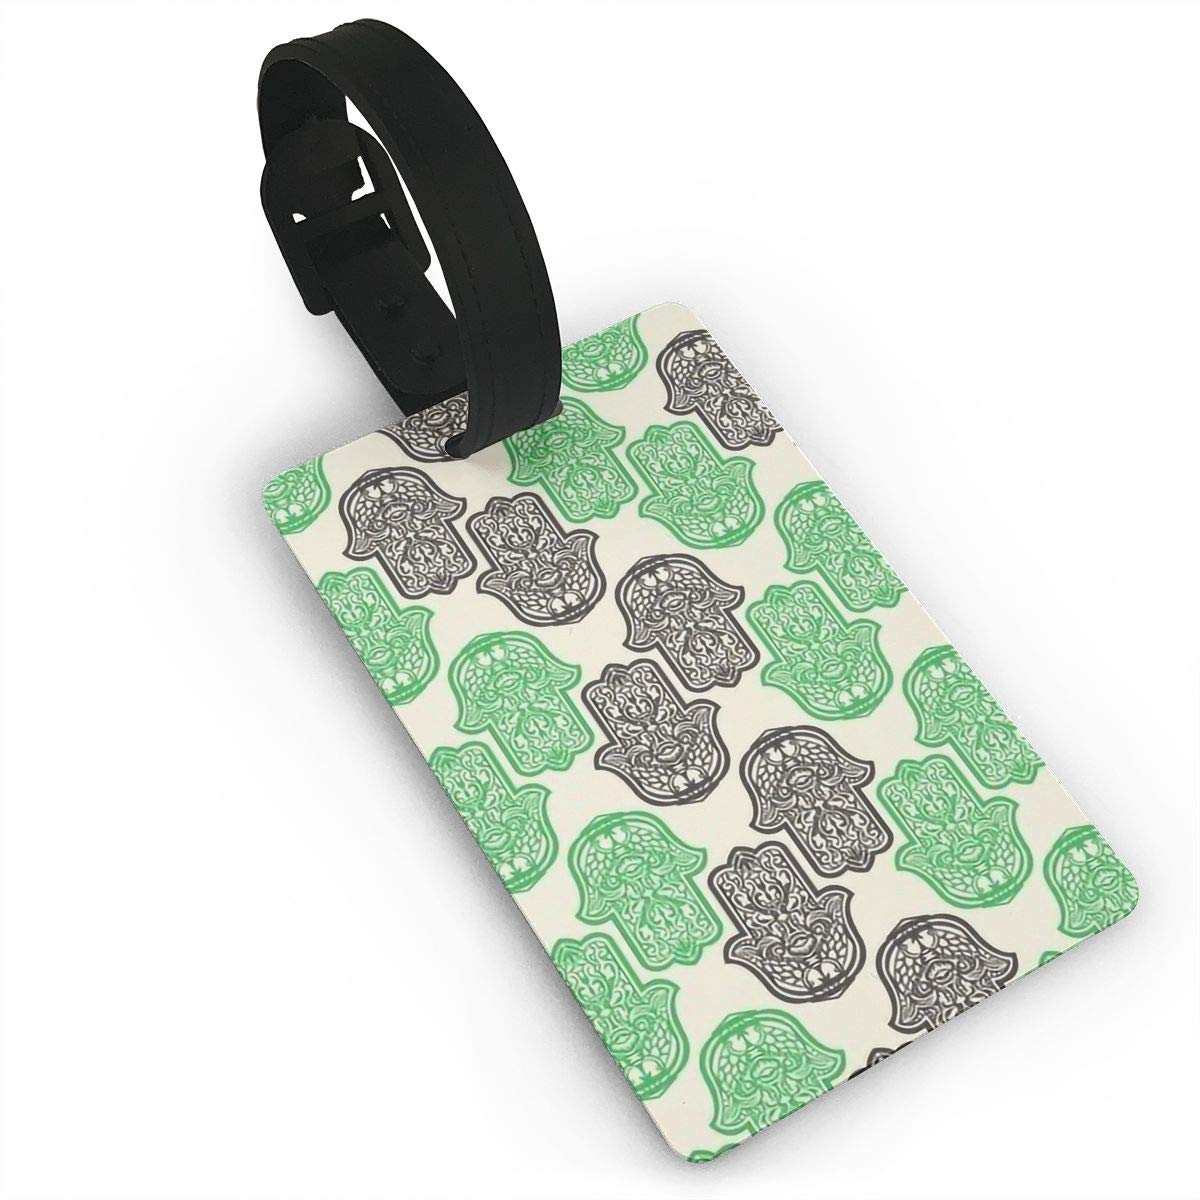 Hamsa Hand Of Fatima Travel Tags For Suitcase Bag Accessories 2 Pack Luggage Tags